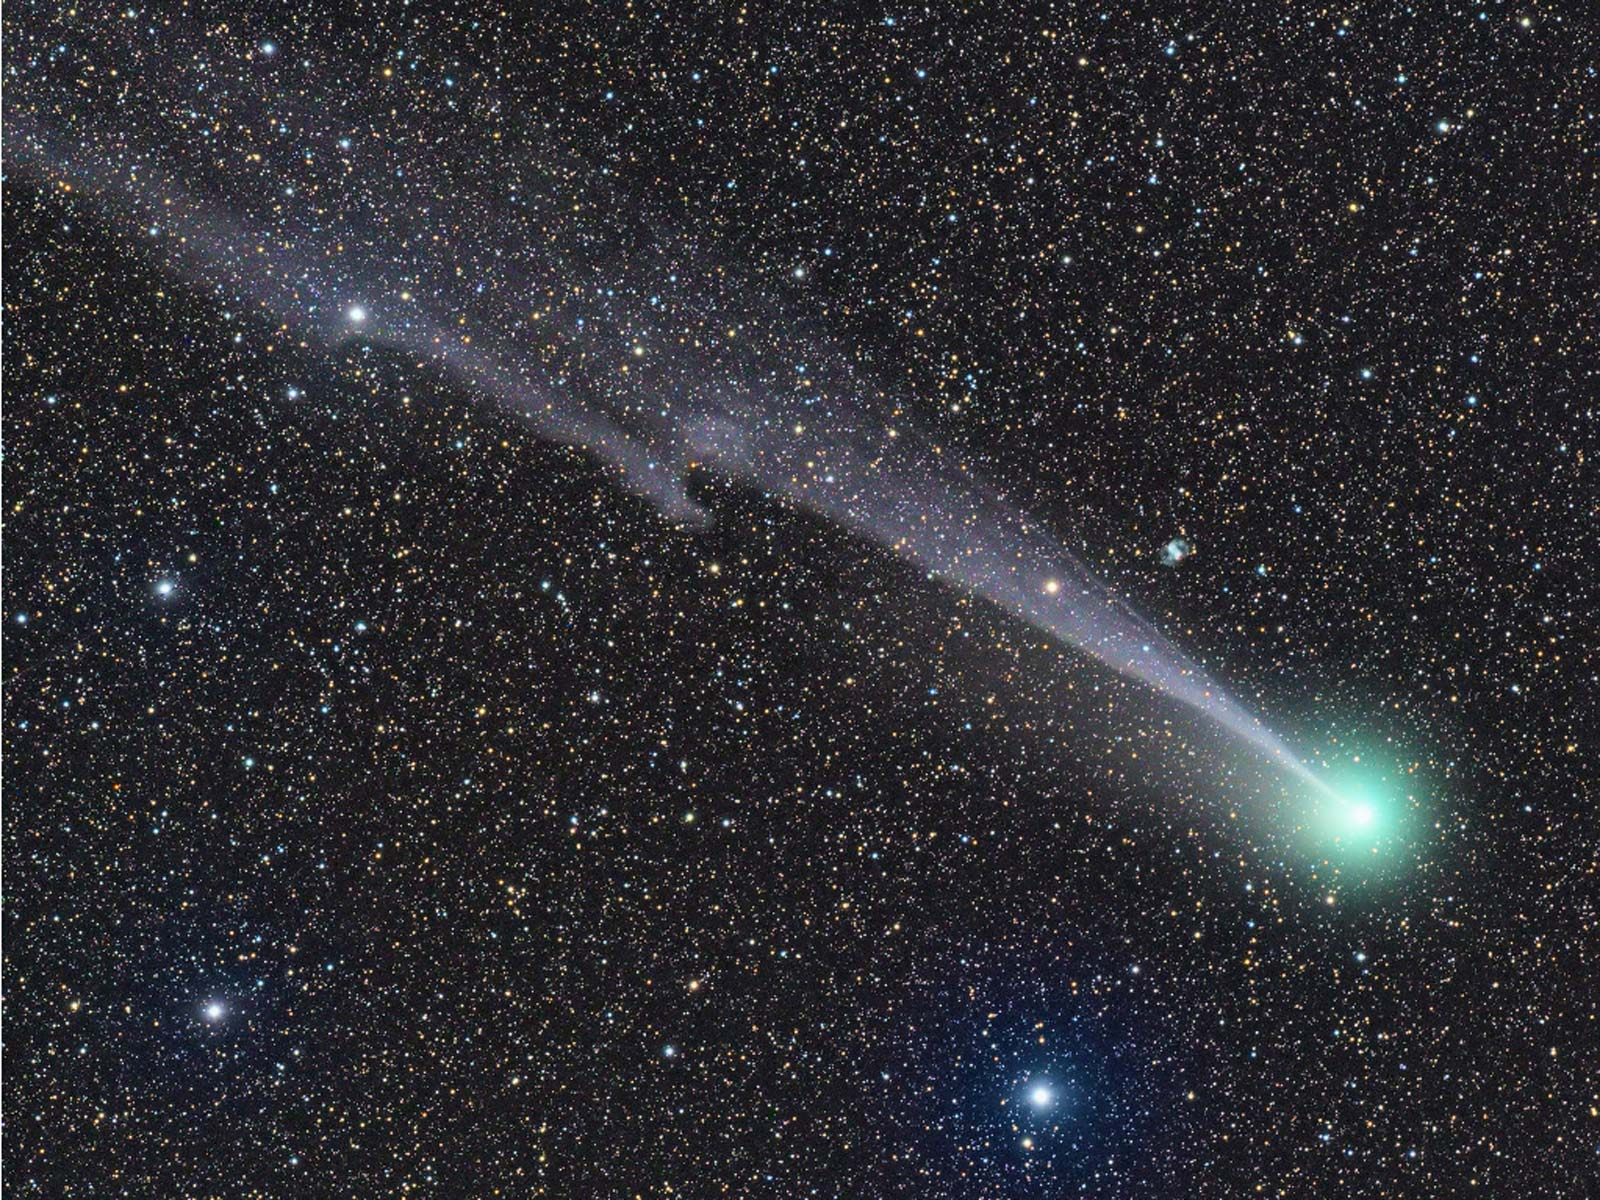 Wispy, Warped Tail of Comet Lovejoy | Space Wallpaper